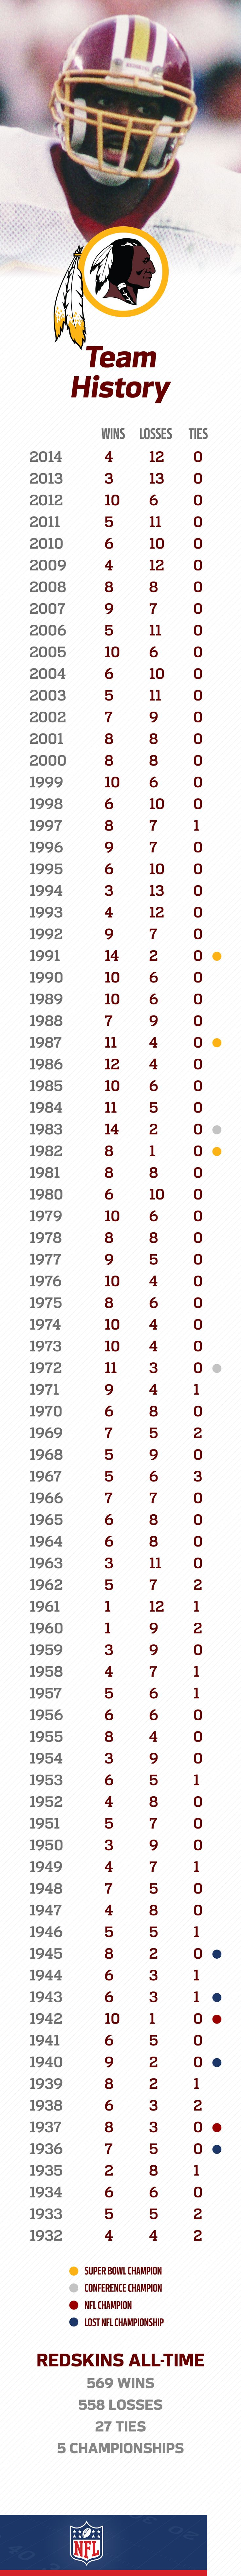 While the Washington Redskins have been rebuilding the past few years, they've had much success in their past, including 3 Super Bowl wins.